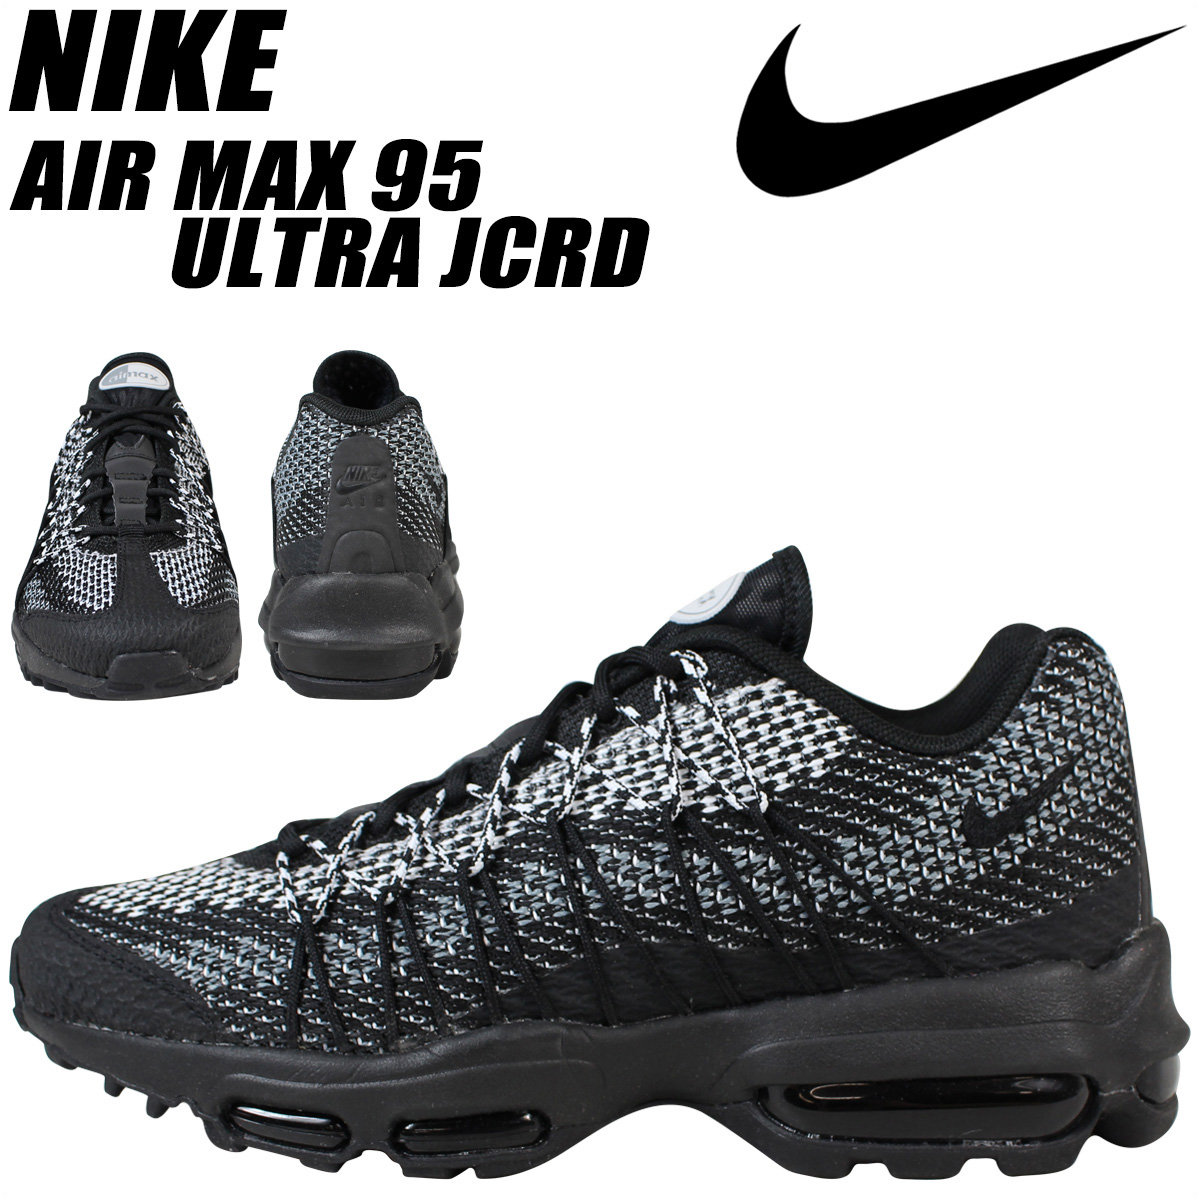 da7ecf8071 nike air max 95 ultra jcrd black